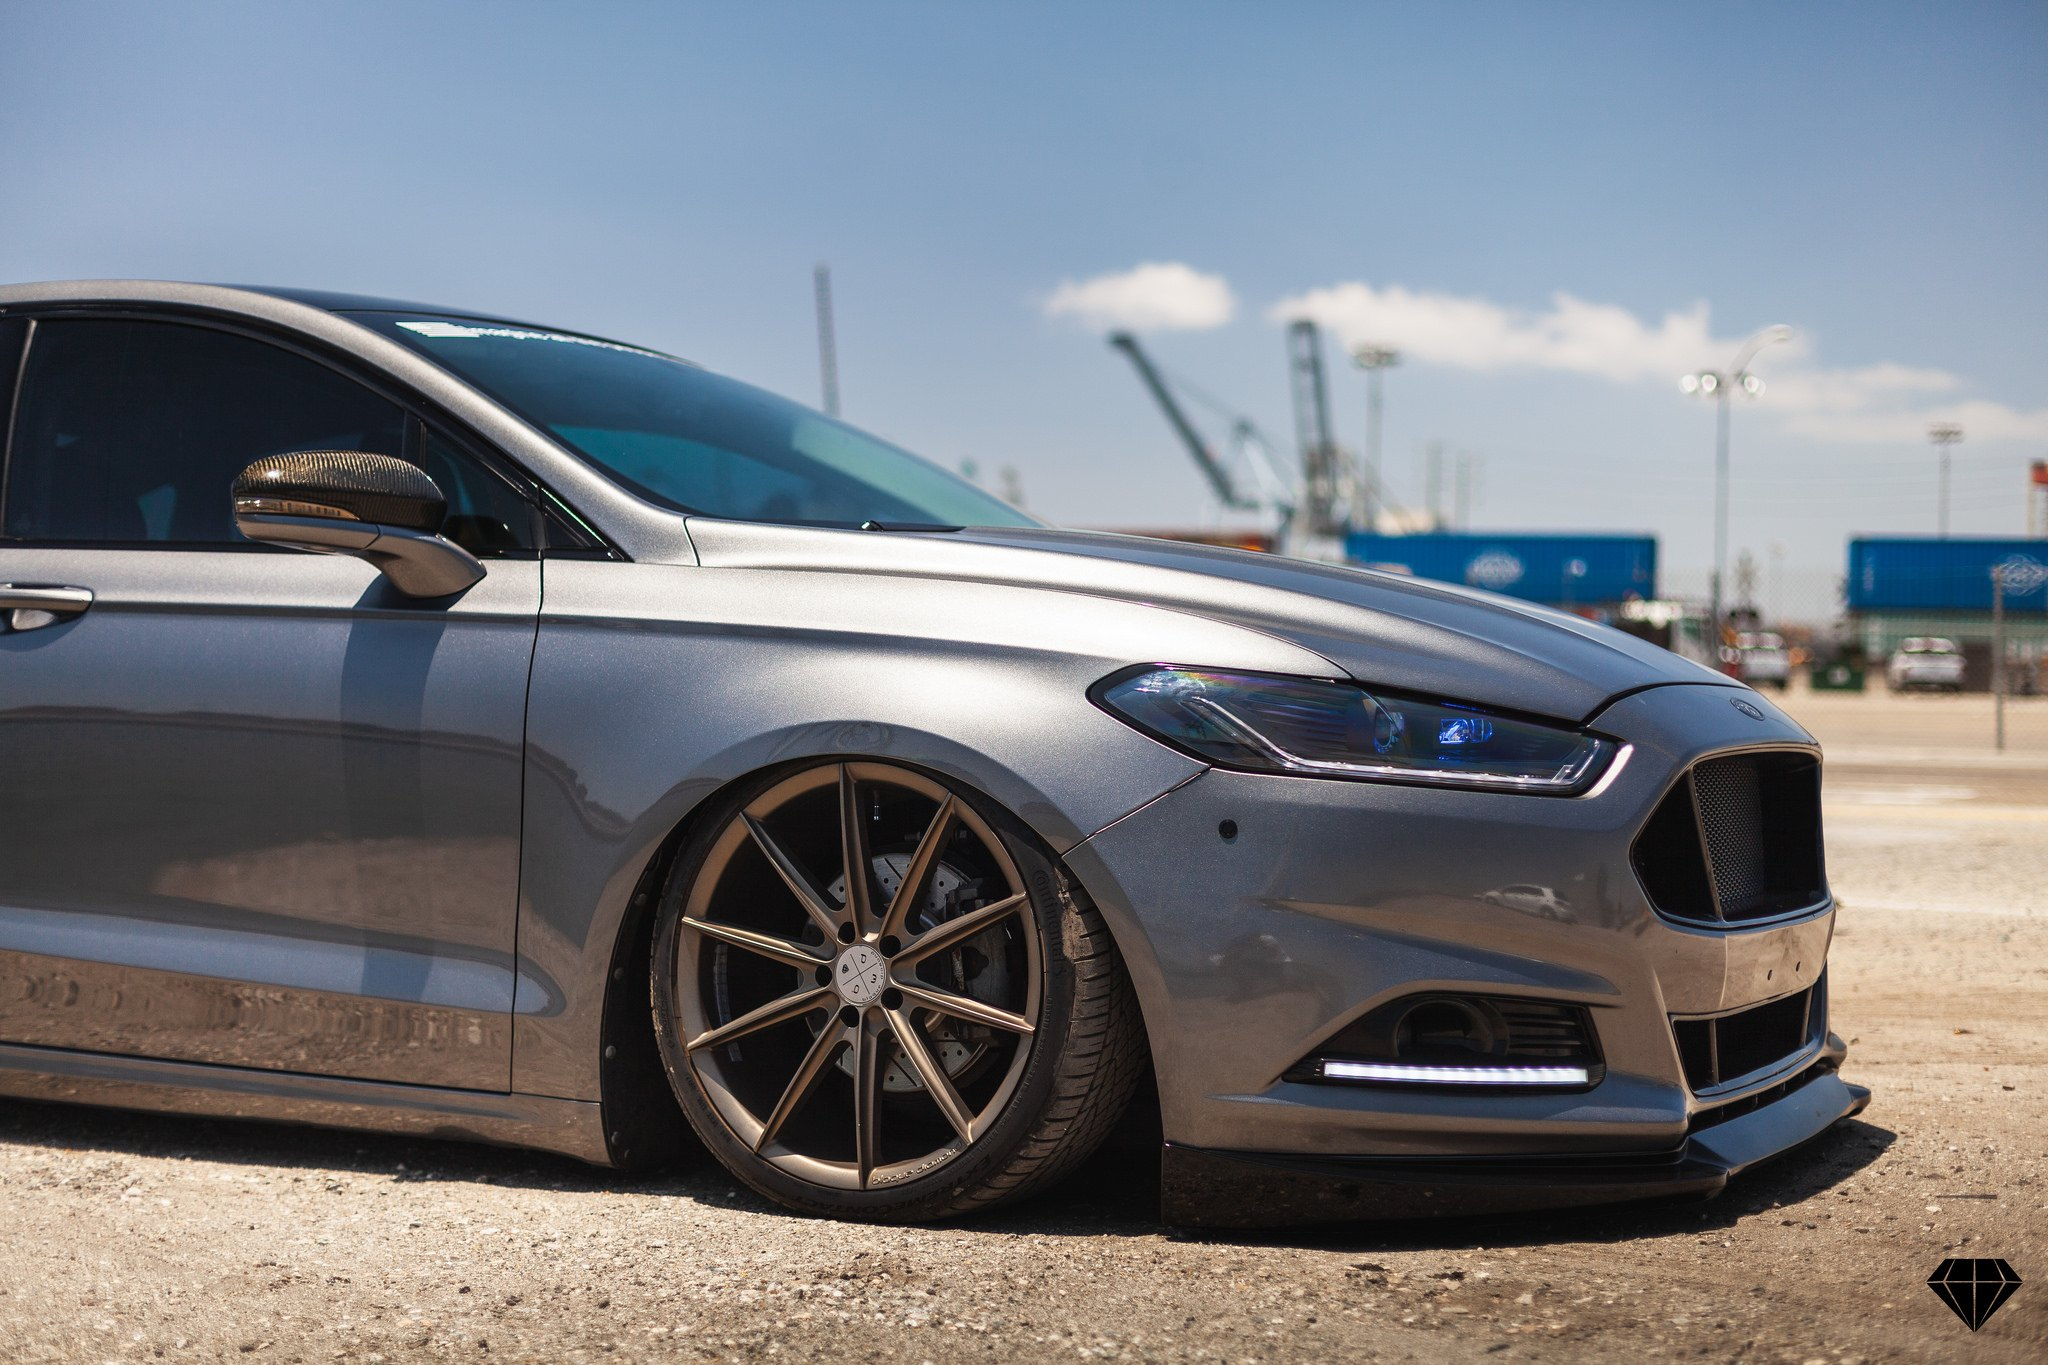 Carbon Fiber Side Mirrors On Silver Ford Fusion Photo By Blaque Diamond Wheels